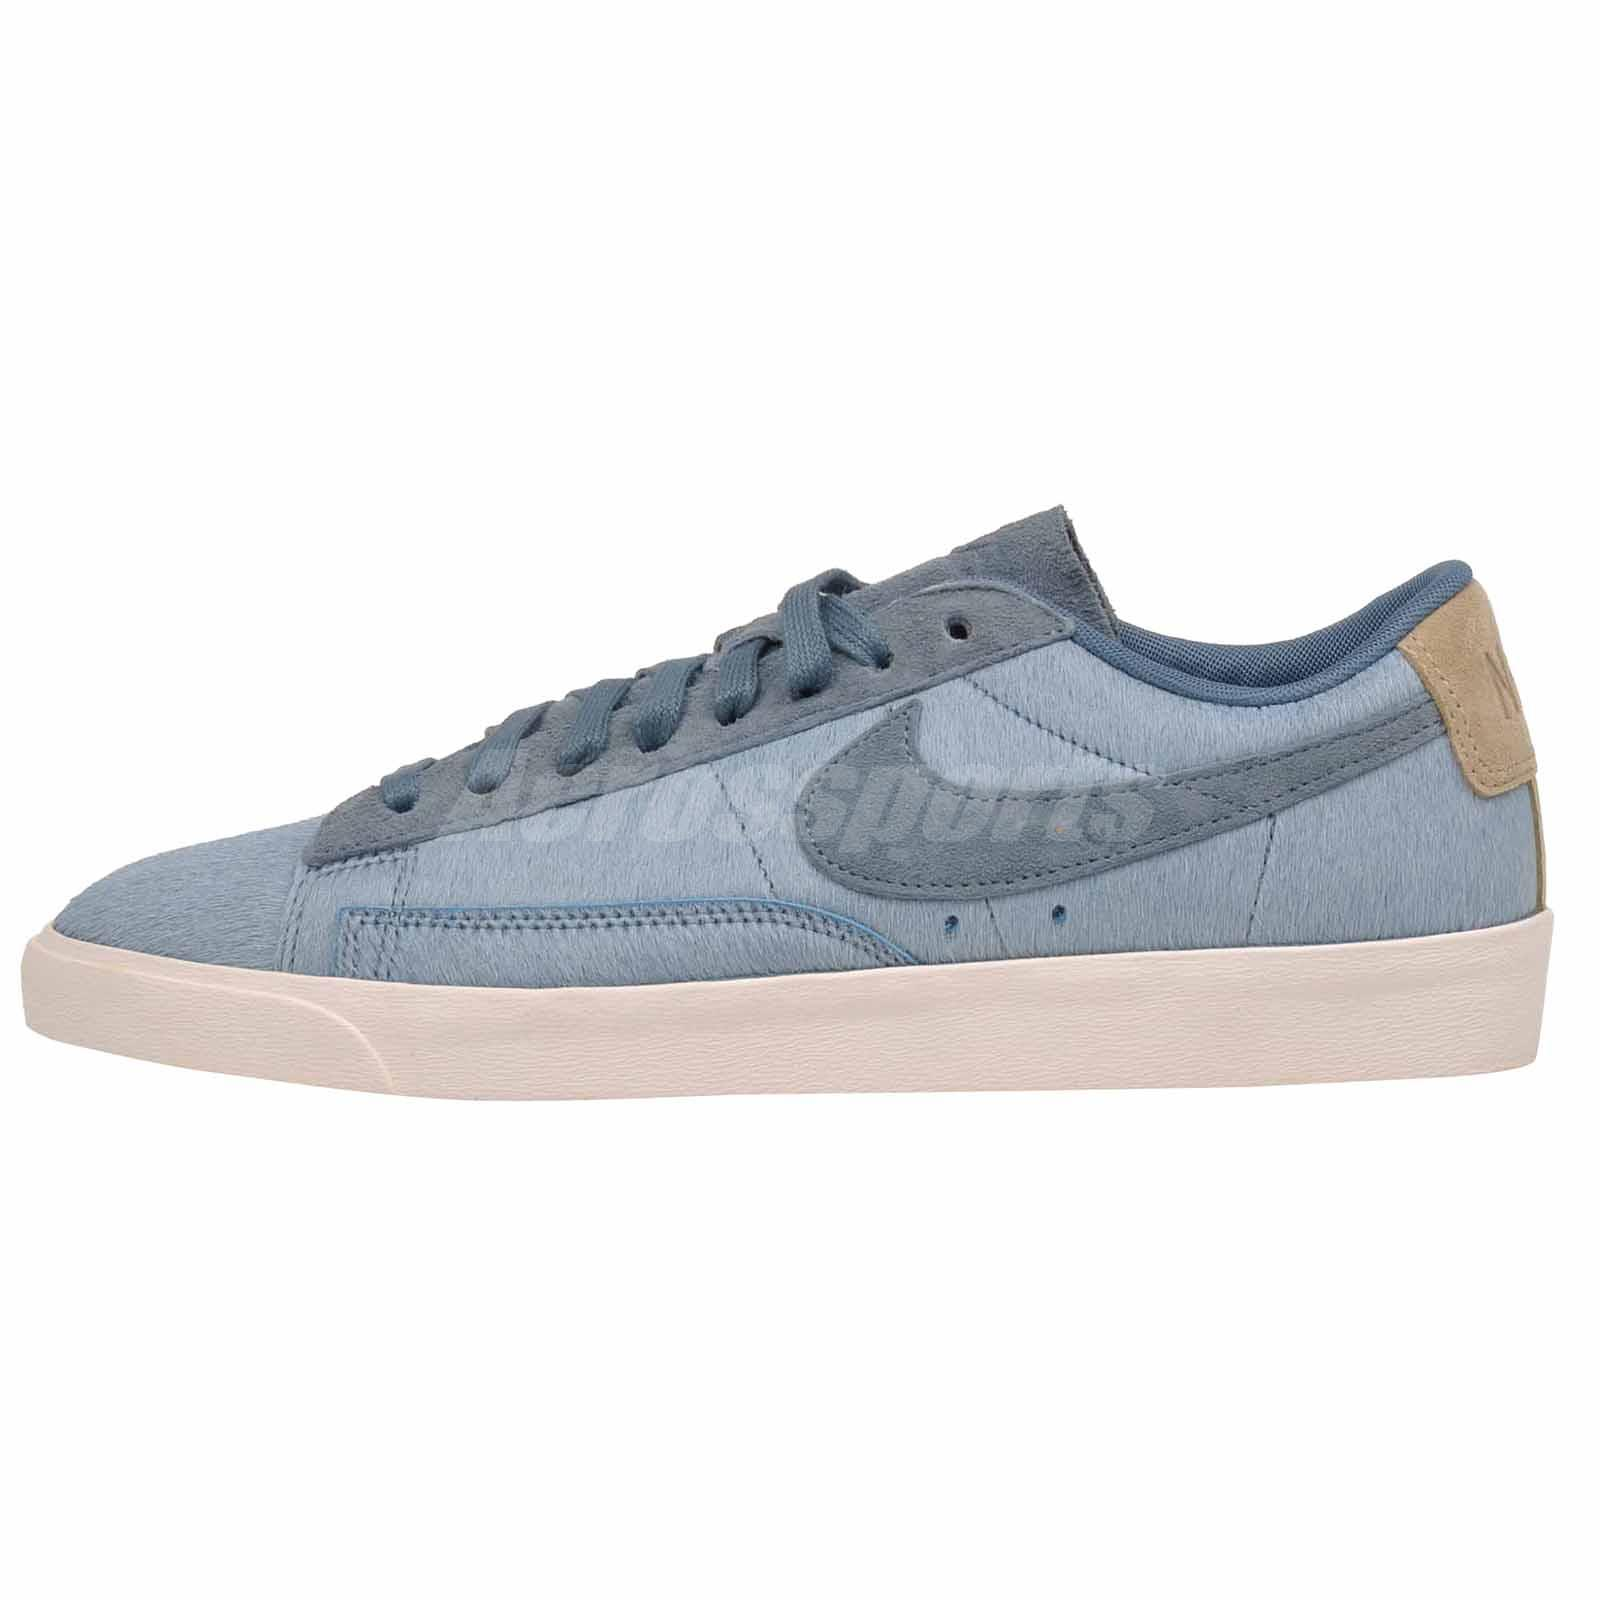 check out 0d28a 8c0dd Details about Nike W Blazer Low LX Casual Womens Shoes Blue AA2017-001